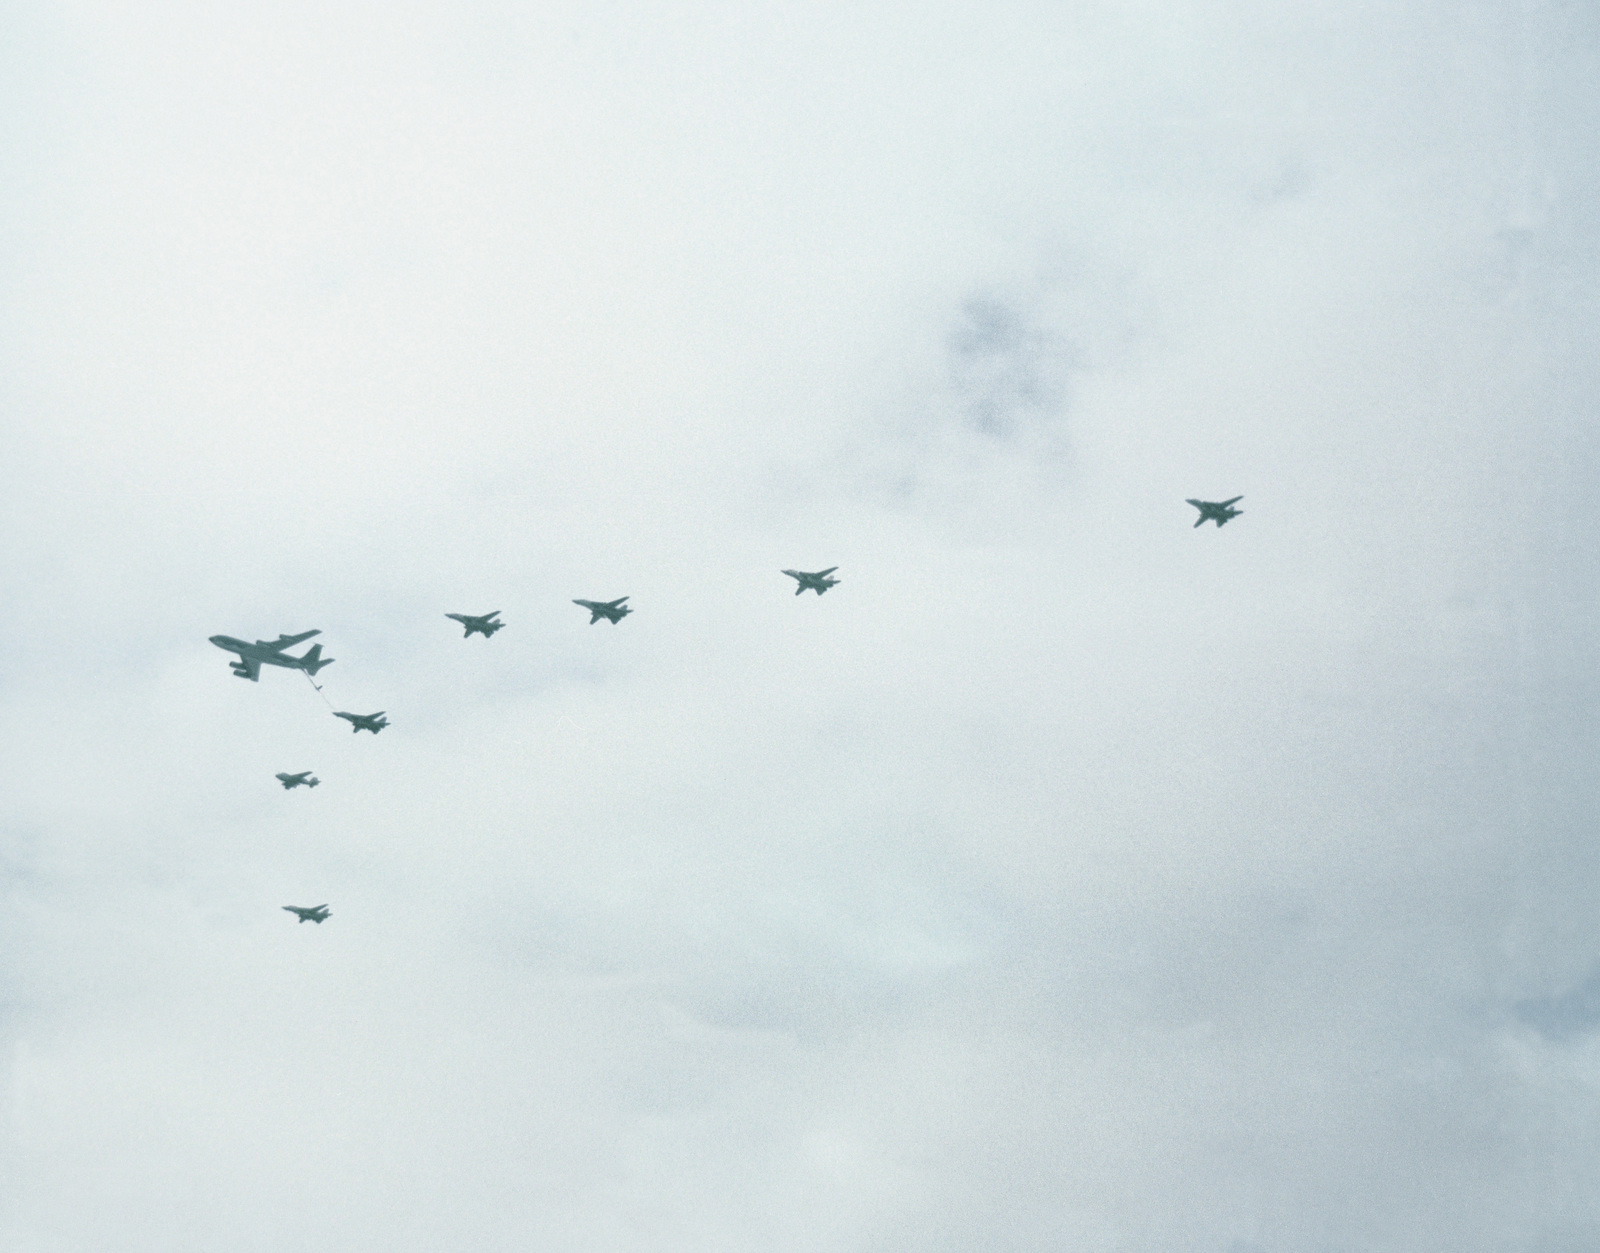 Six F-14A Tomcat and an A-6E Intruder aircraft from Carrier Air Wing 1 (CVW-1) conduct an in-flight refueling with an Air Force KC-135 Stratotanker aircraft while en route to their target during Operation Desert Storm. CVW-1 is deployed aboard the aircraft carrier USS AMERICA (CV 66).